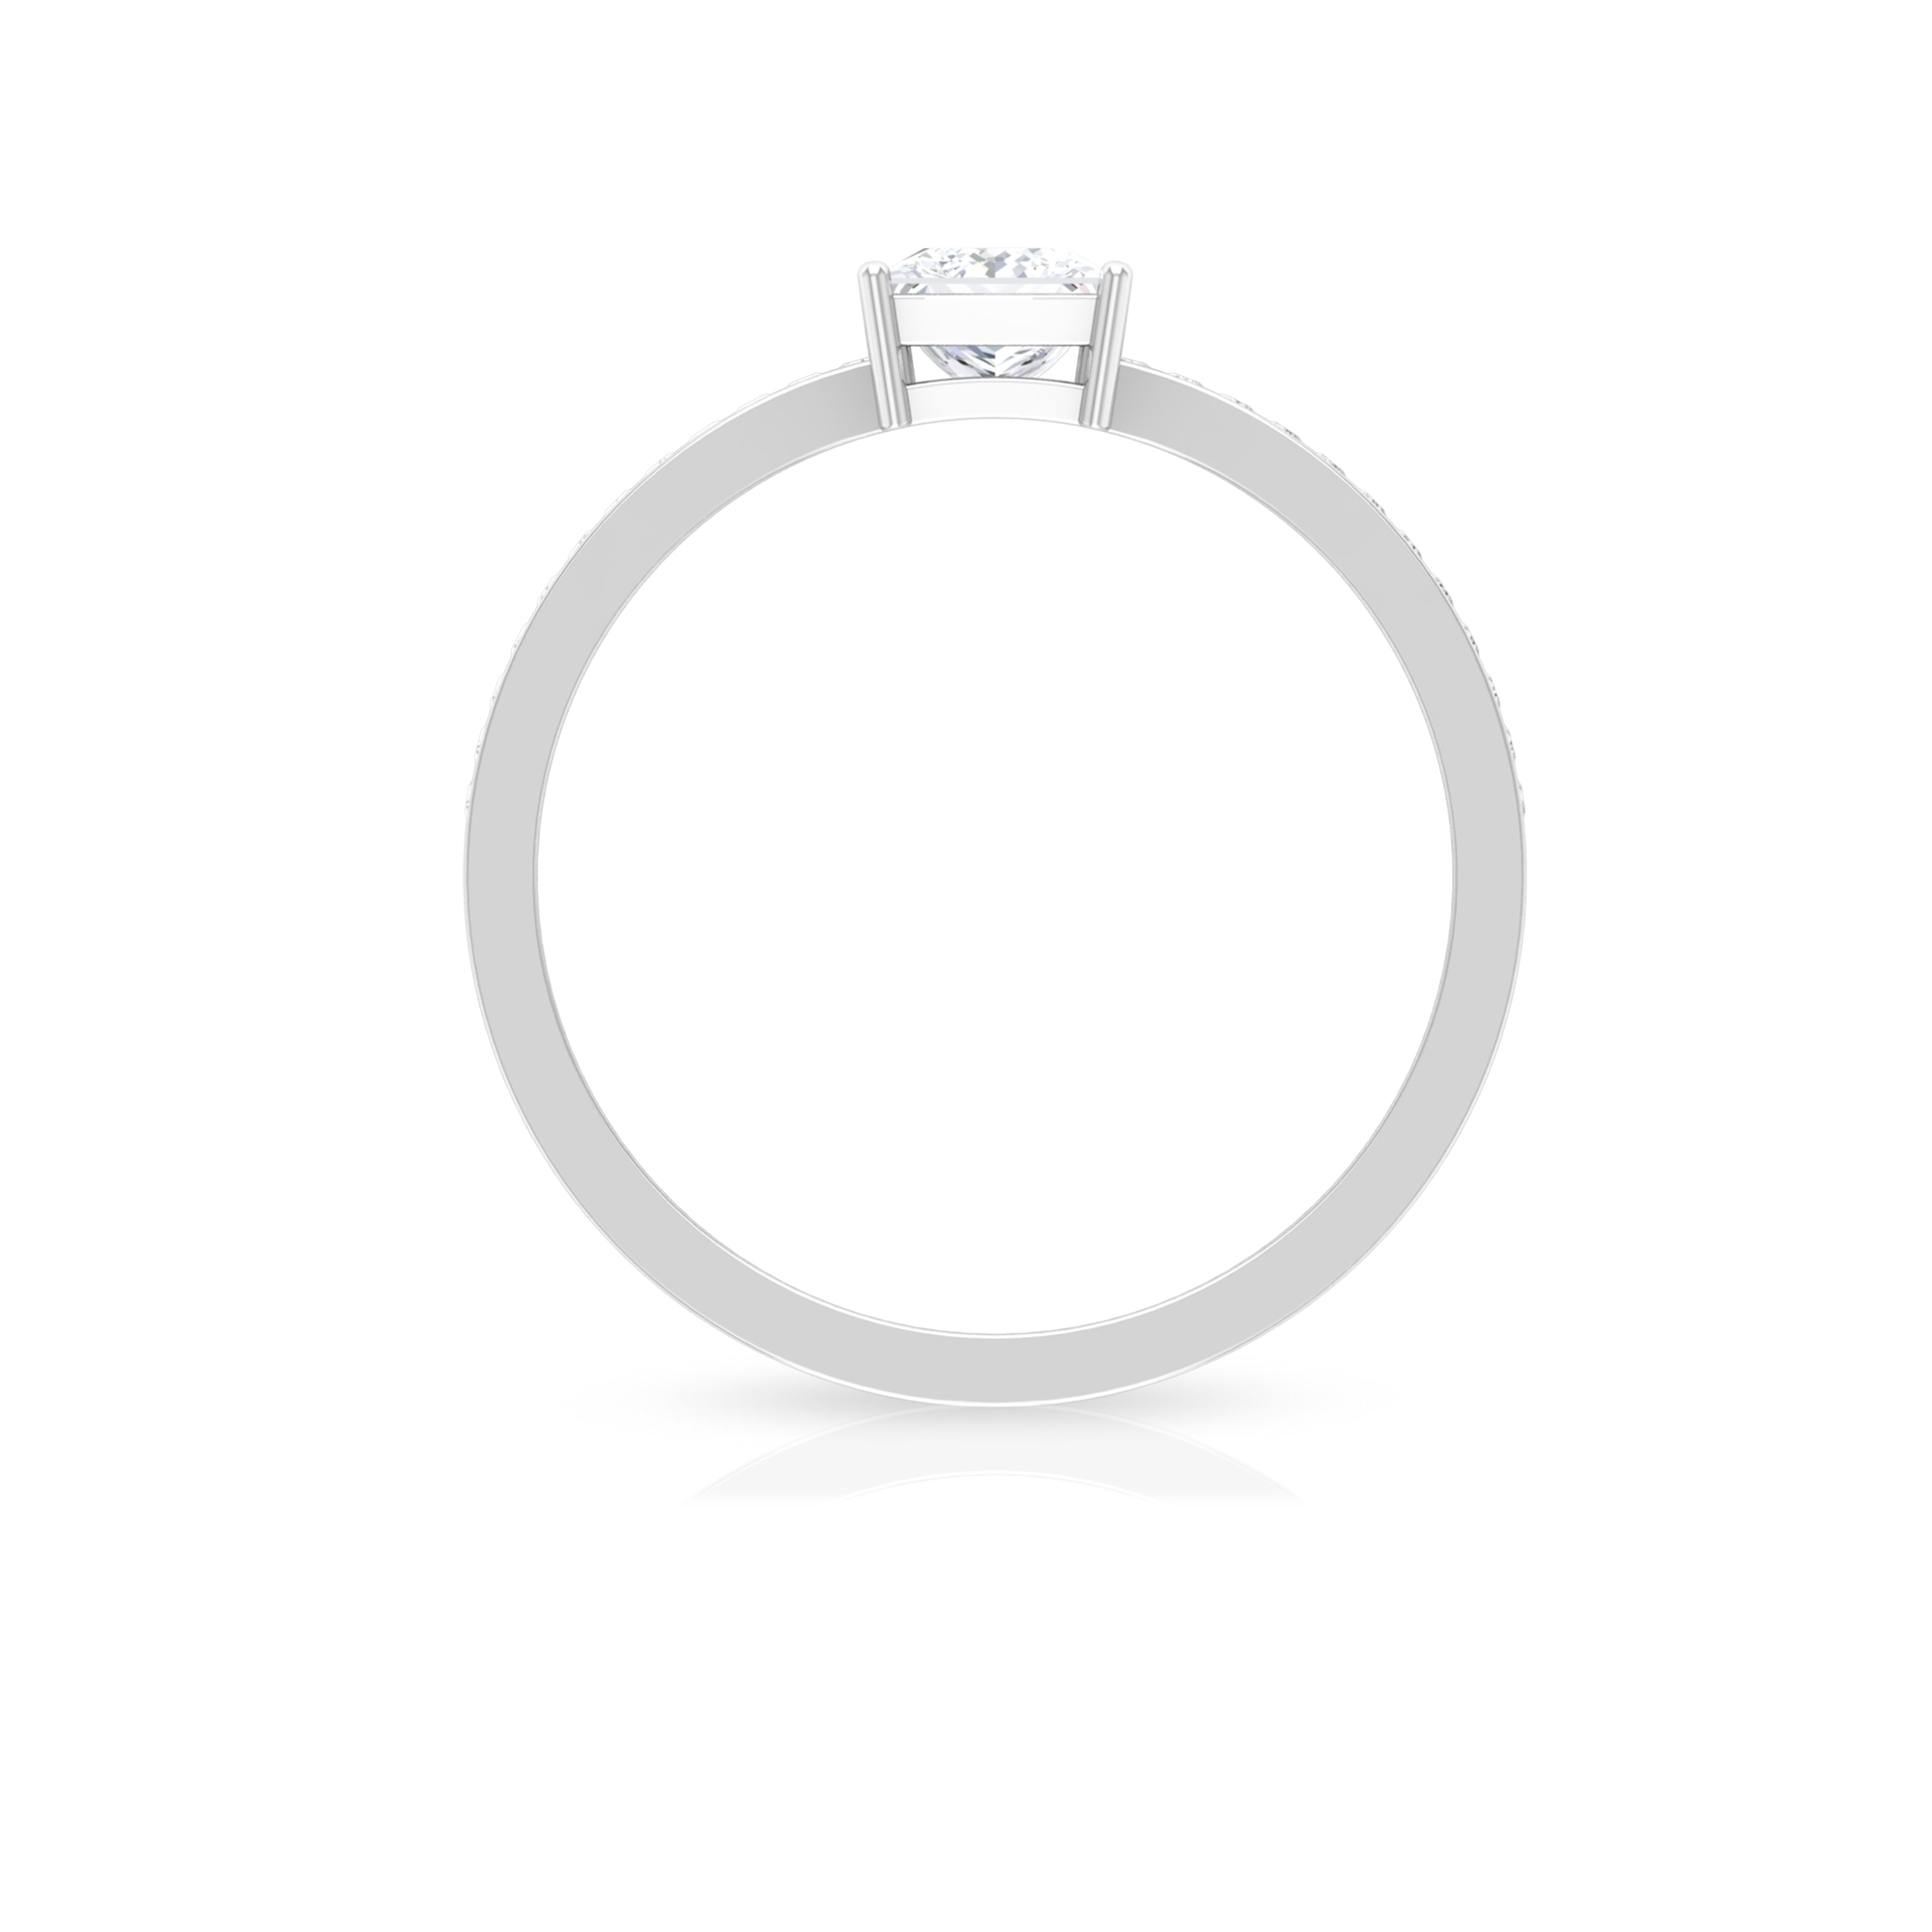 4.5X4.5 MM Princess Cut Diamond Solitaire Ring in 4 Prong Setting with Side Stones